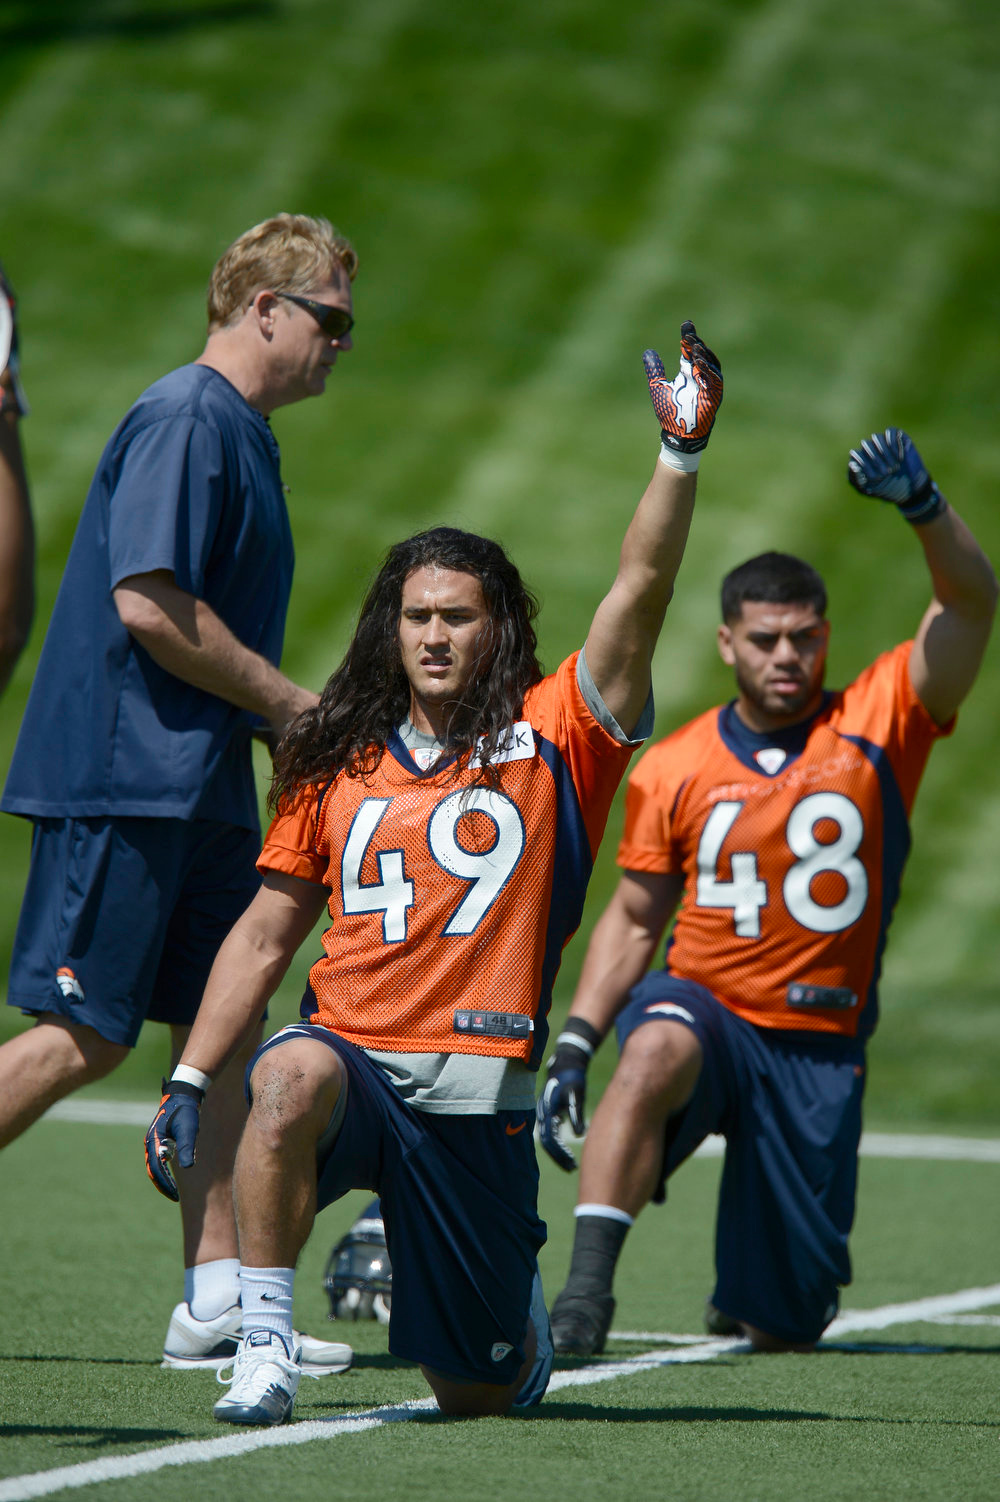 . Damien Holmes (49) of the Denver Broncos and Uona Kavelnga (48) stretch during last day of rookie mini camp May 12, 20313 at Dover Valley.   (Photo By John Leyba/The Denver Post)